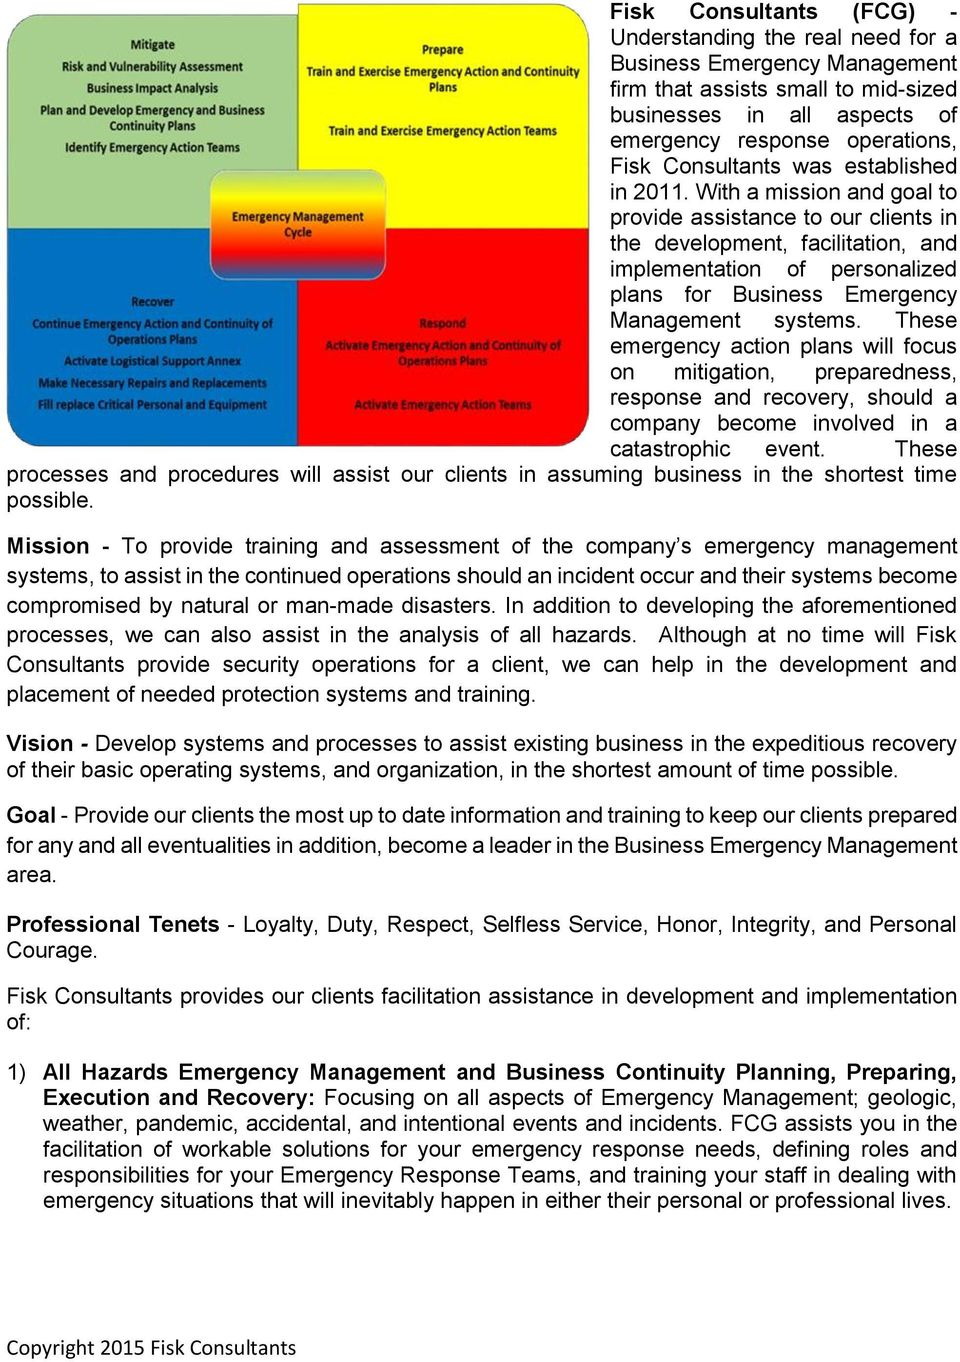 With a mission and goal to provide assistance to our clients in the development, facilitation, and implementation of personalized plans for Business Emergency Management systems.